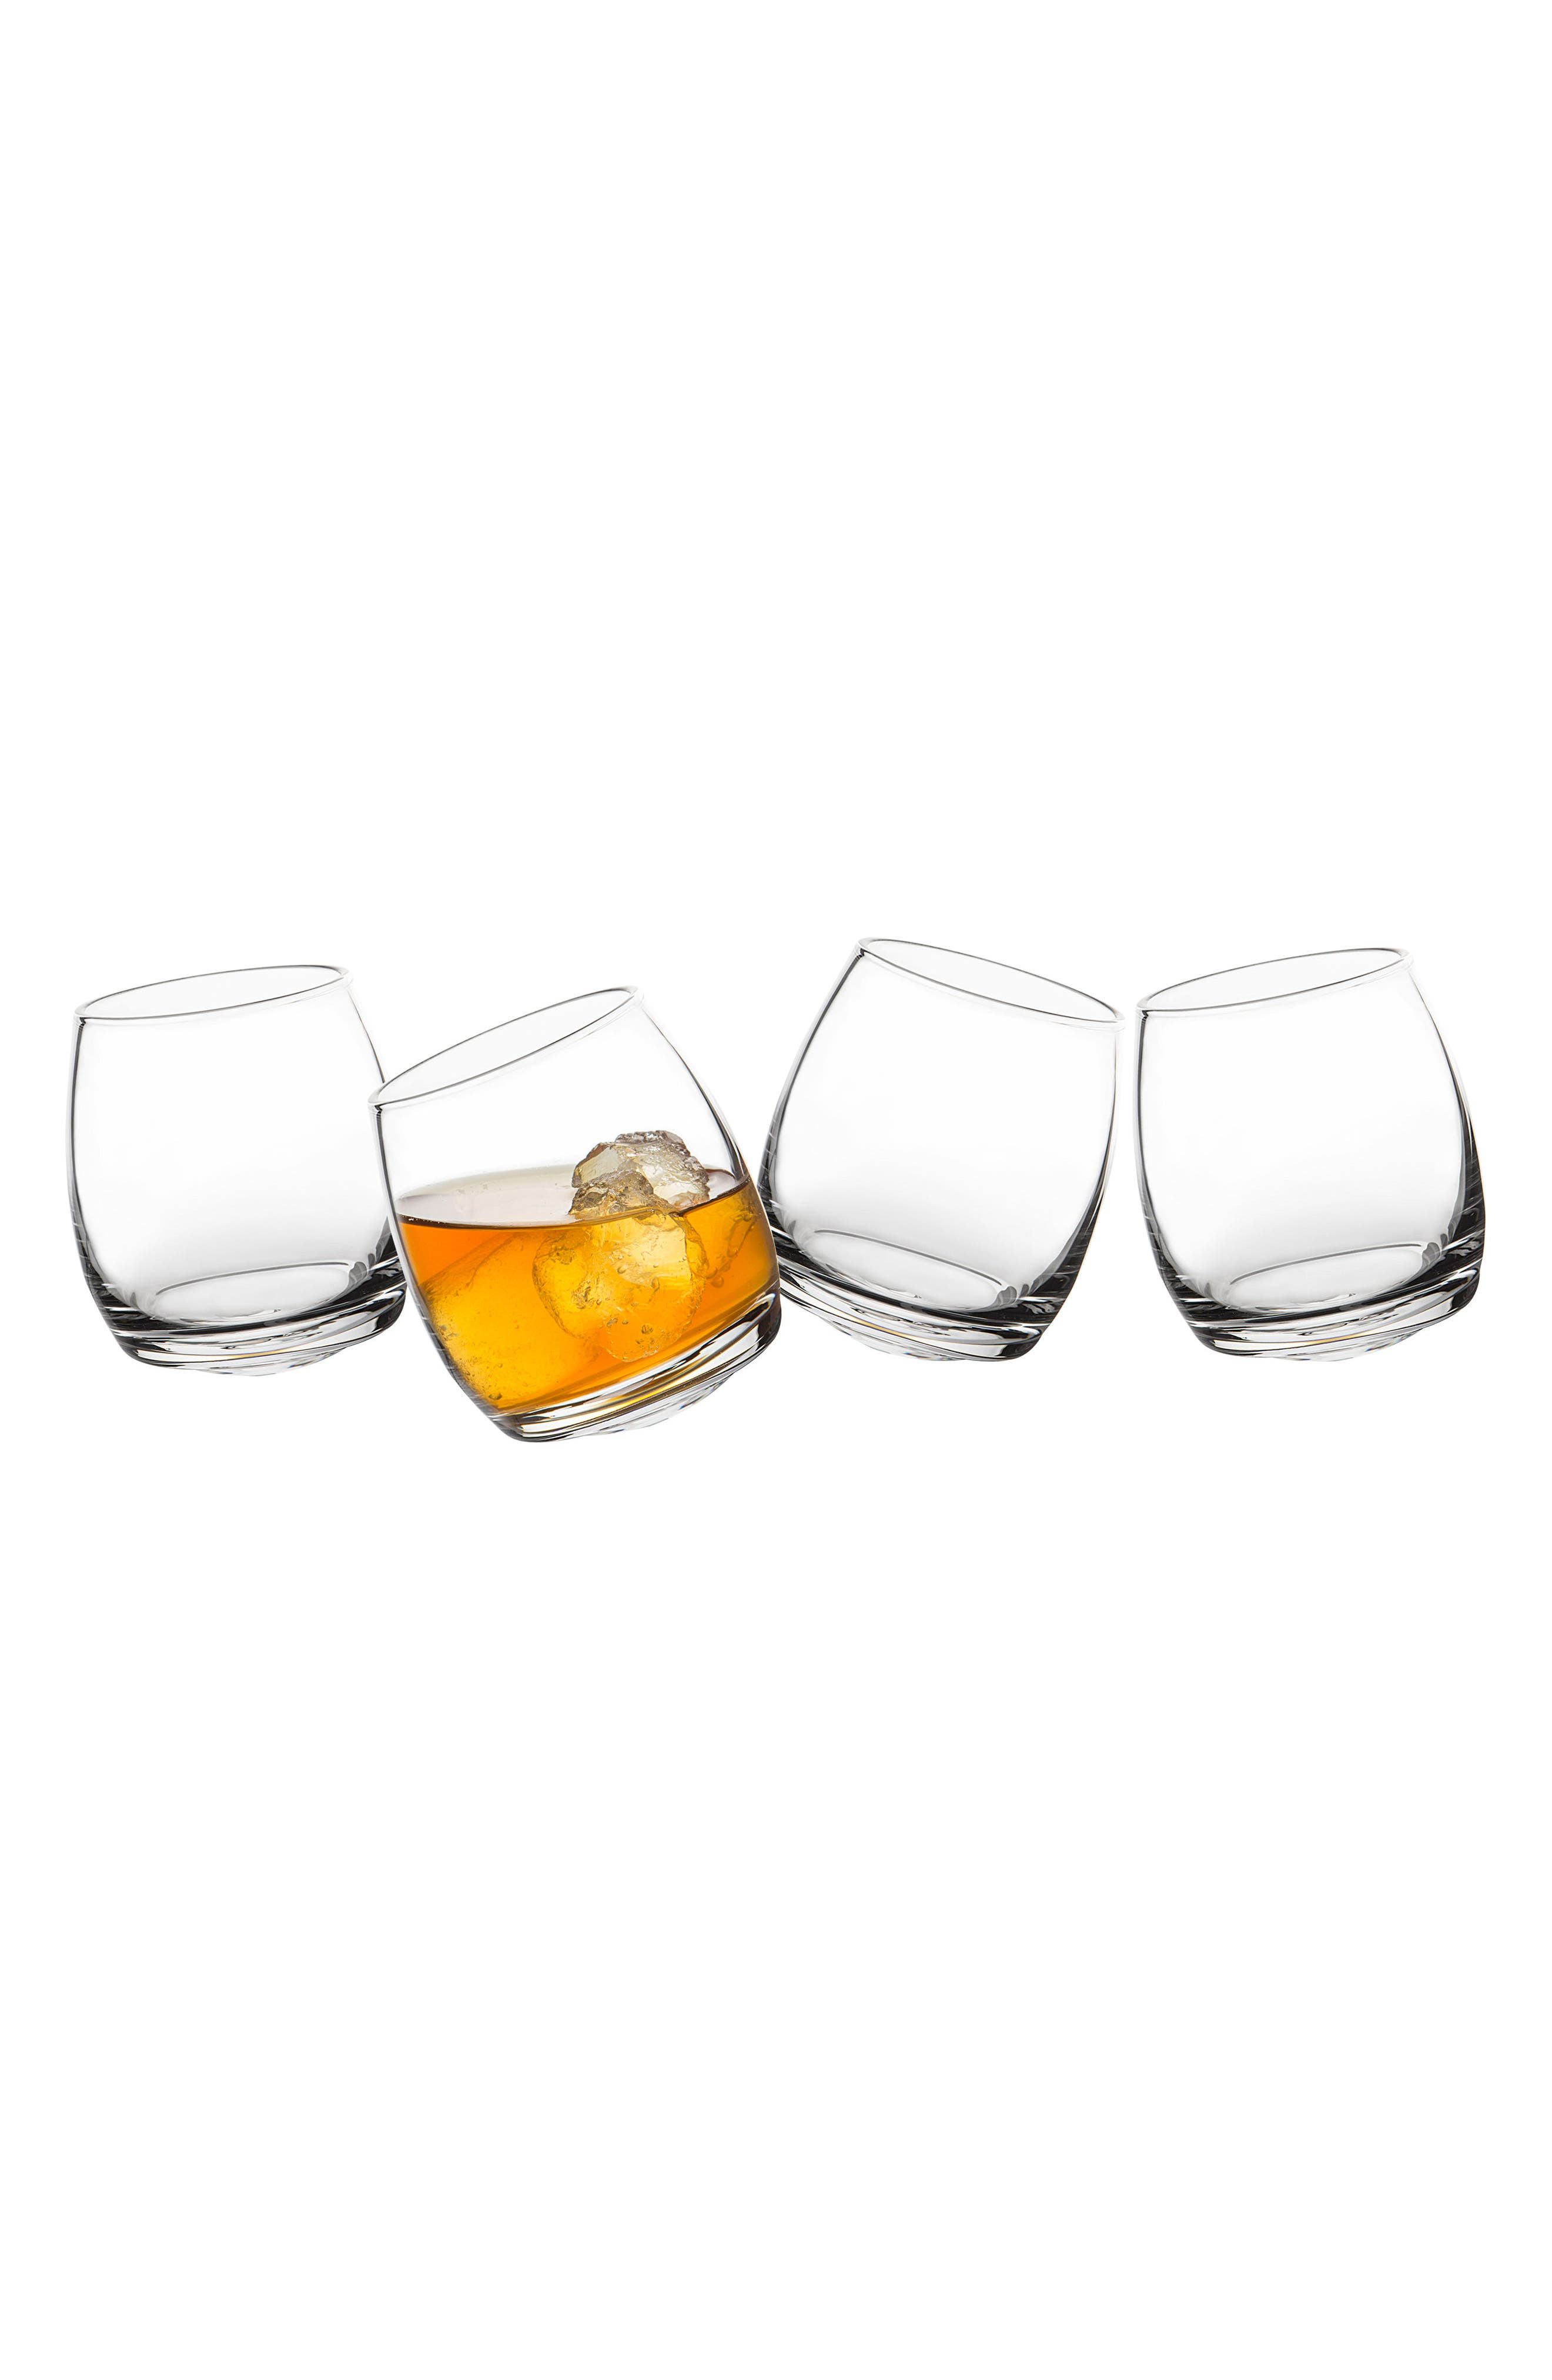 Monogram Tipsy Set of 4 Double Old Fashioned Glasses,                             Main thumbnail 1, color,                             100